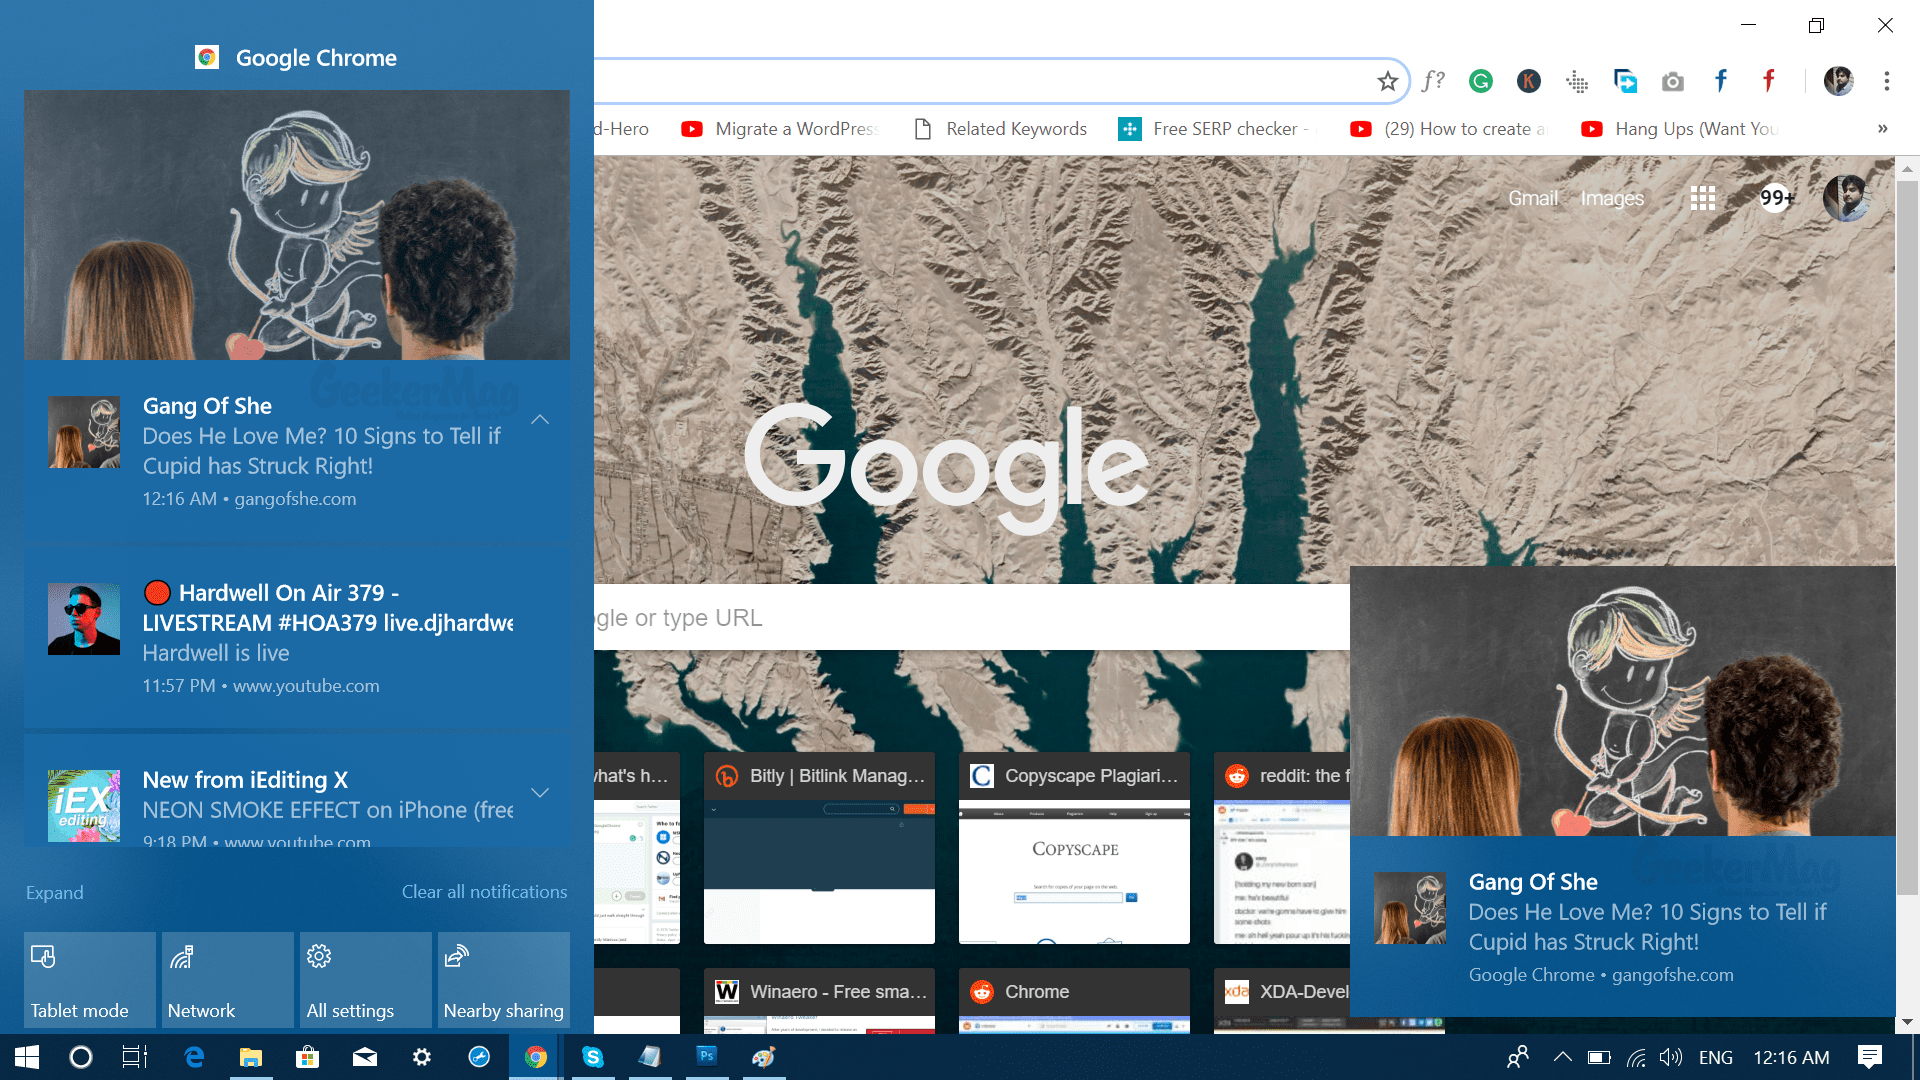 Enable & Disable Native Google Chrome Notifications in Windows 10